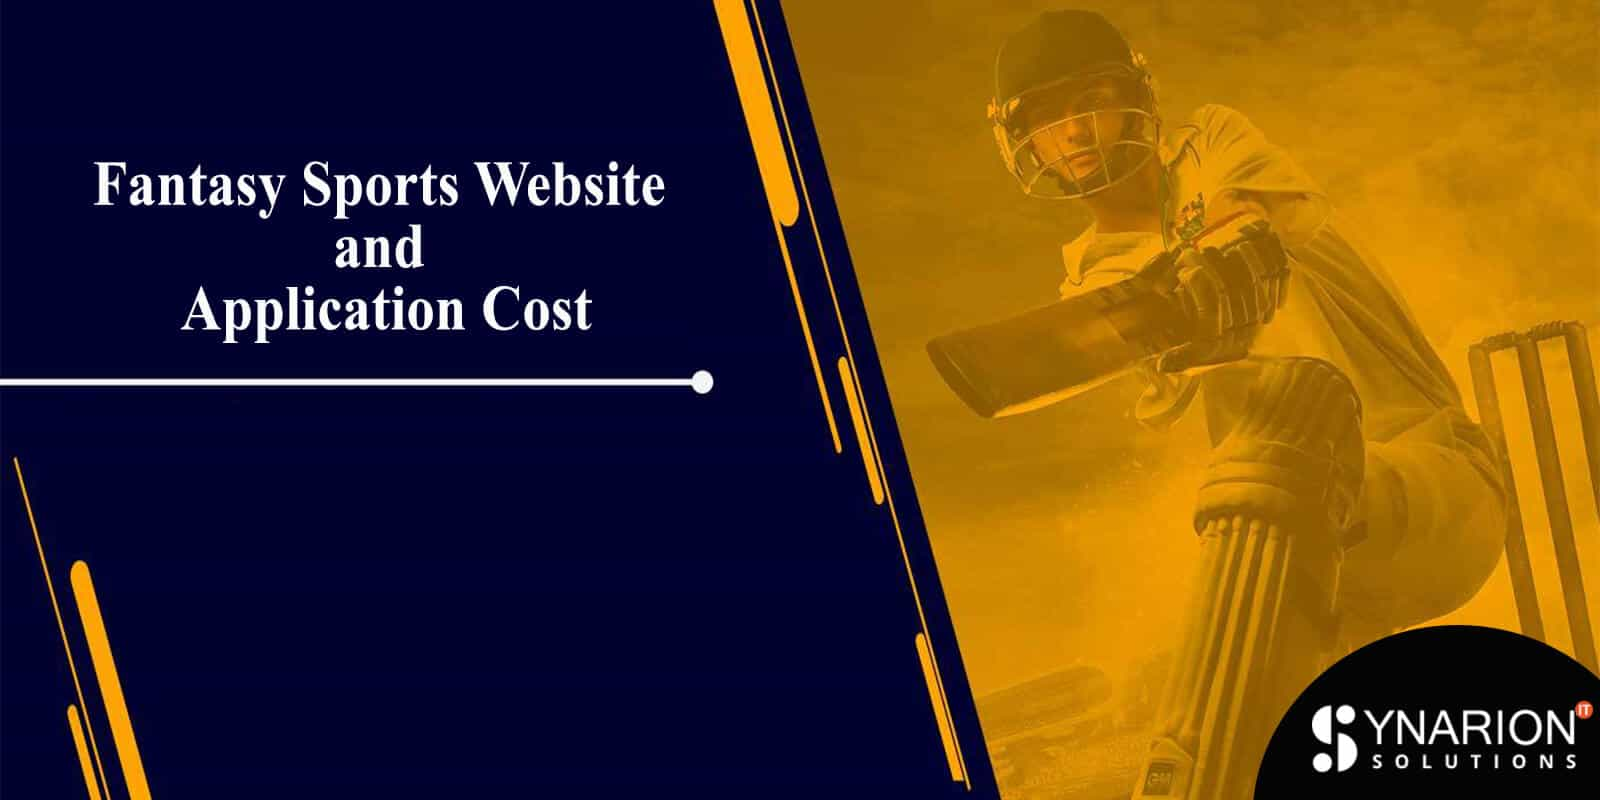 Fantasy Sports Website and Application Cost